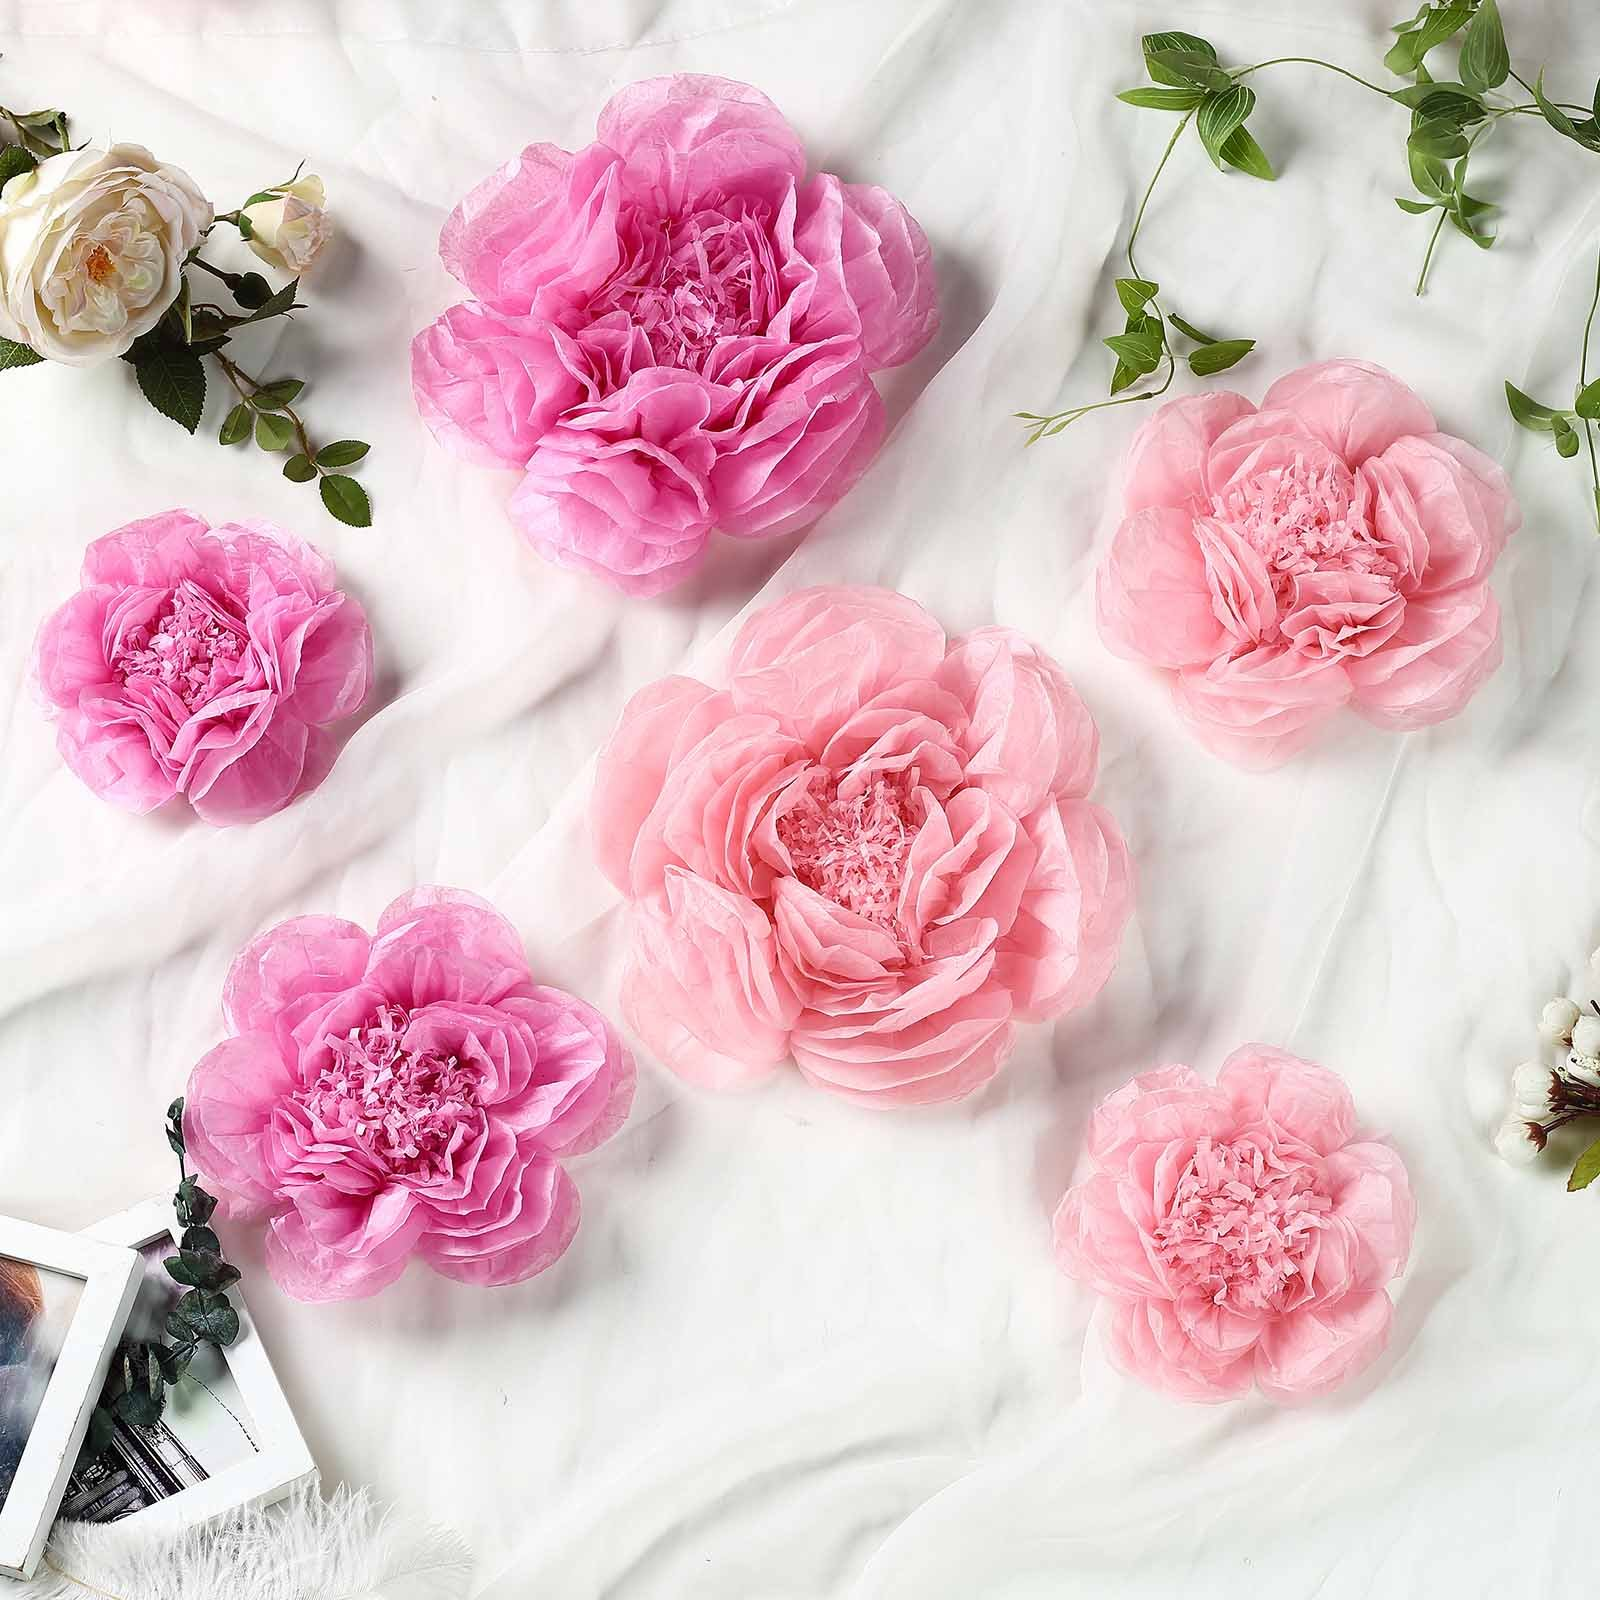 Efavormart 6 Pack Assorted Size Giant Paper Peony Flowers Decor